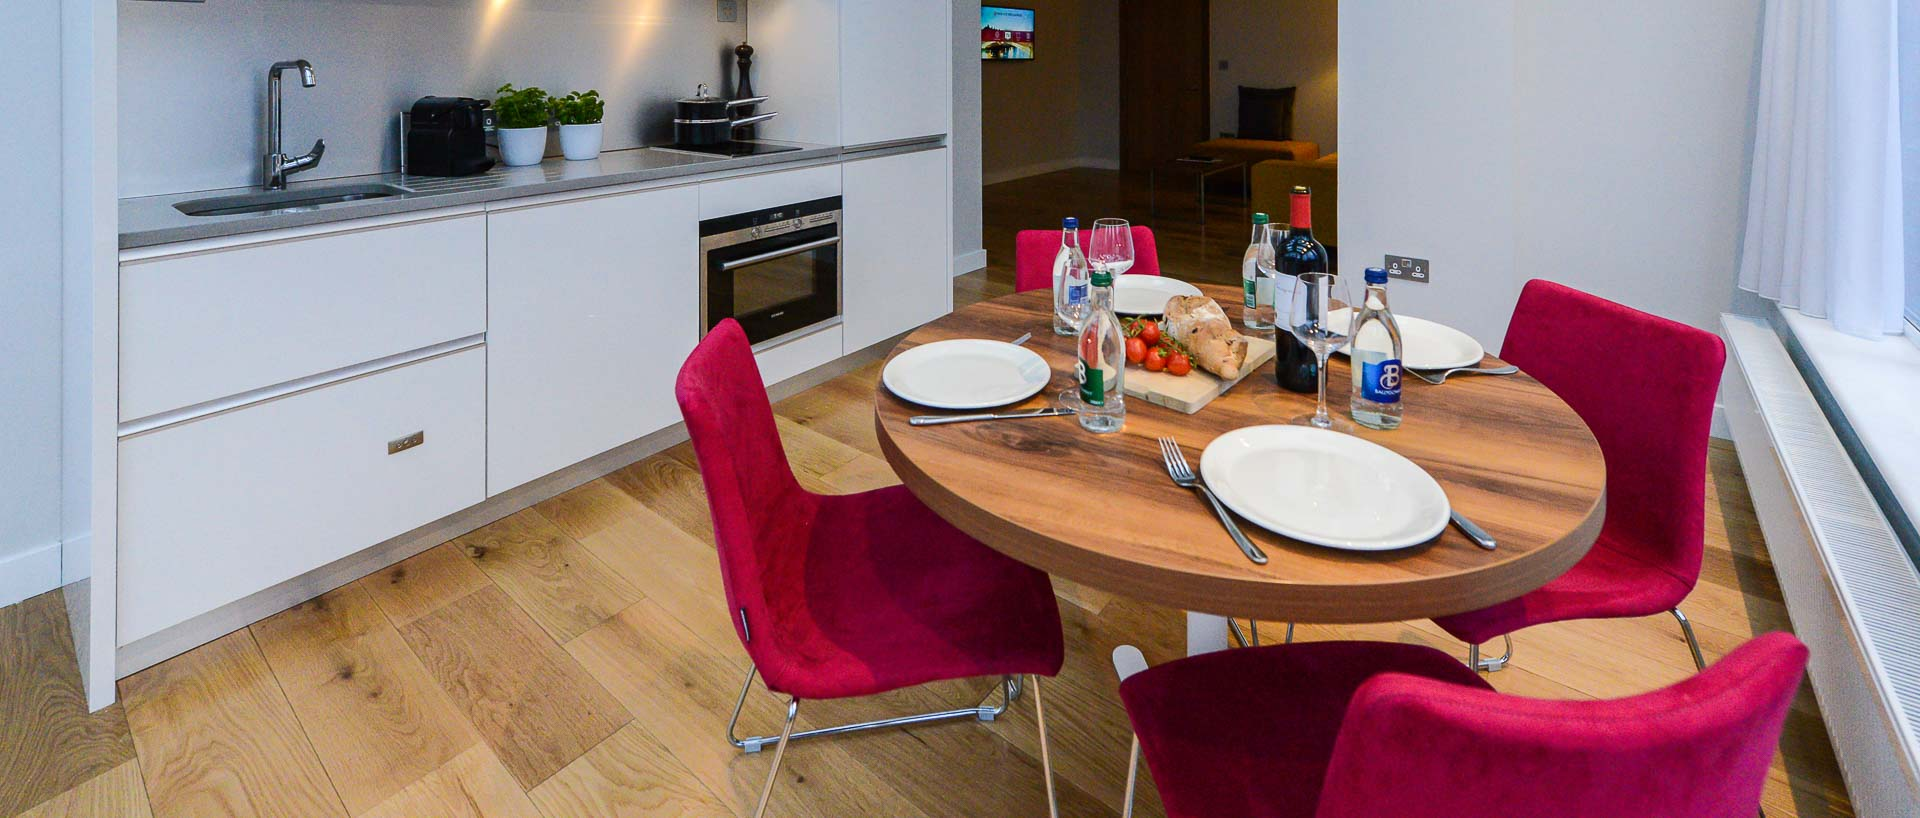 The dining table set up for lunch at PREMIER SUITES PLUS Dublin Ballsbridge serviced apartments